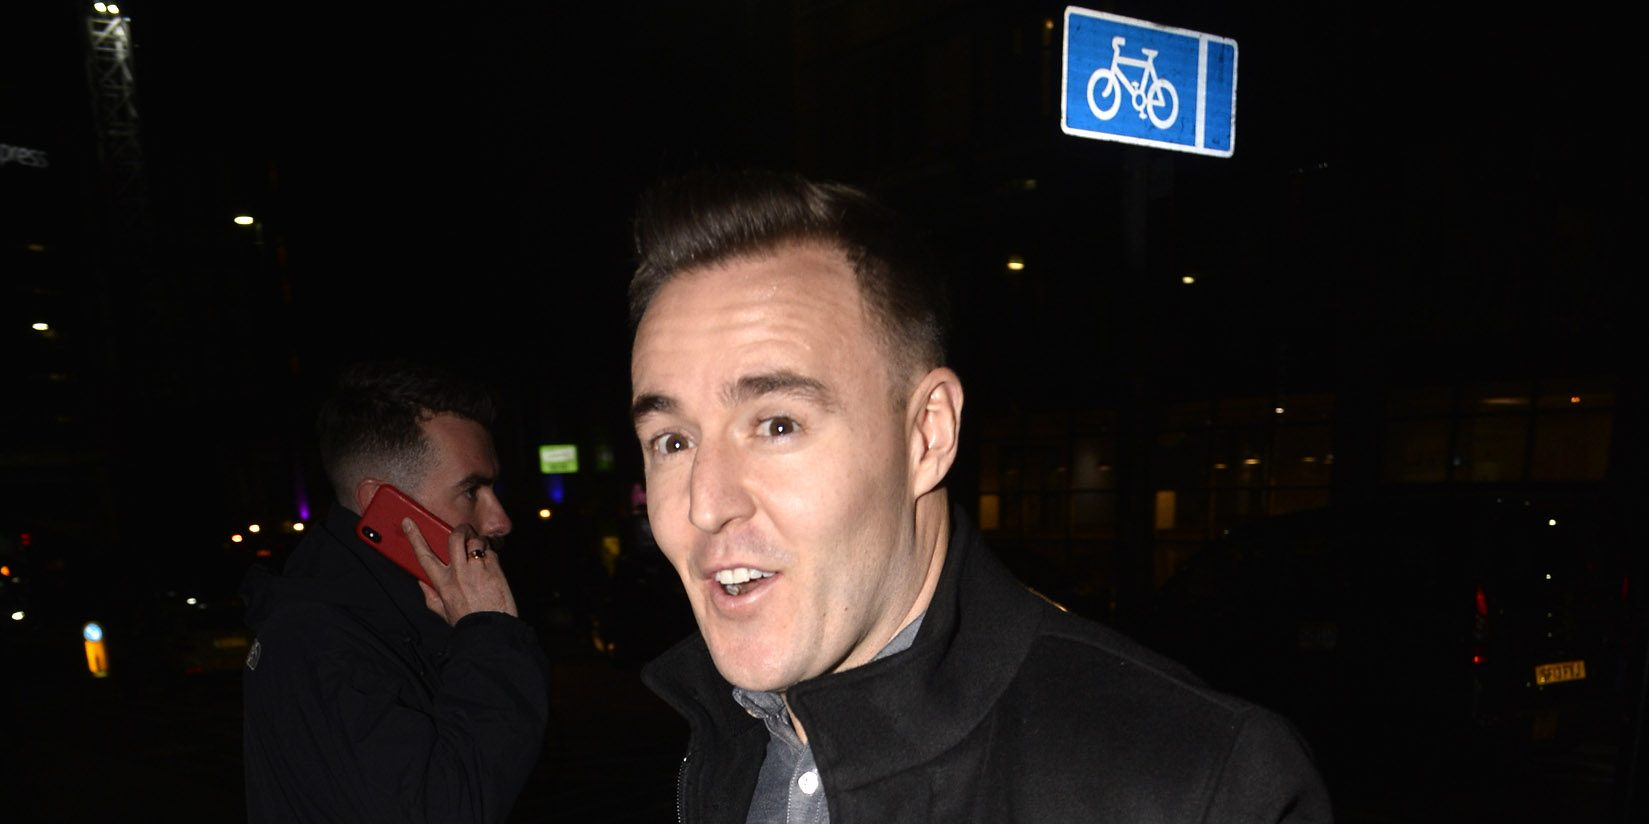 Coronation Street's Alan Halsall shares pictures with co-stars on day out